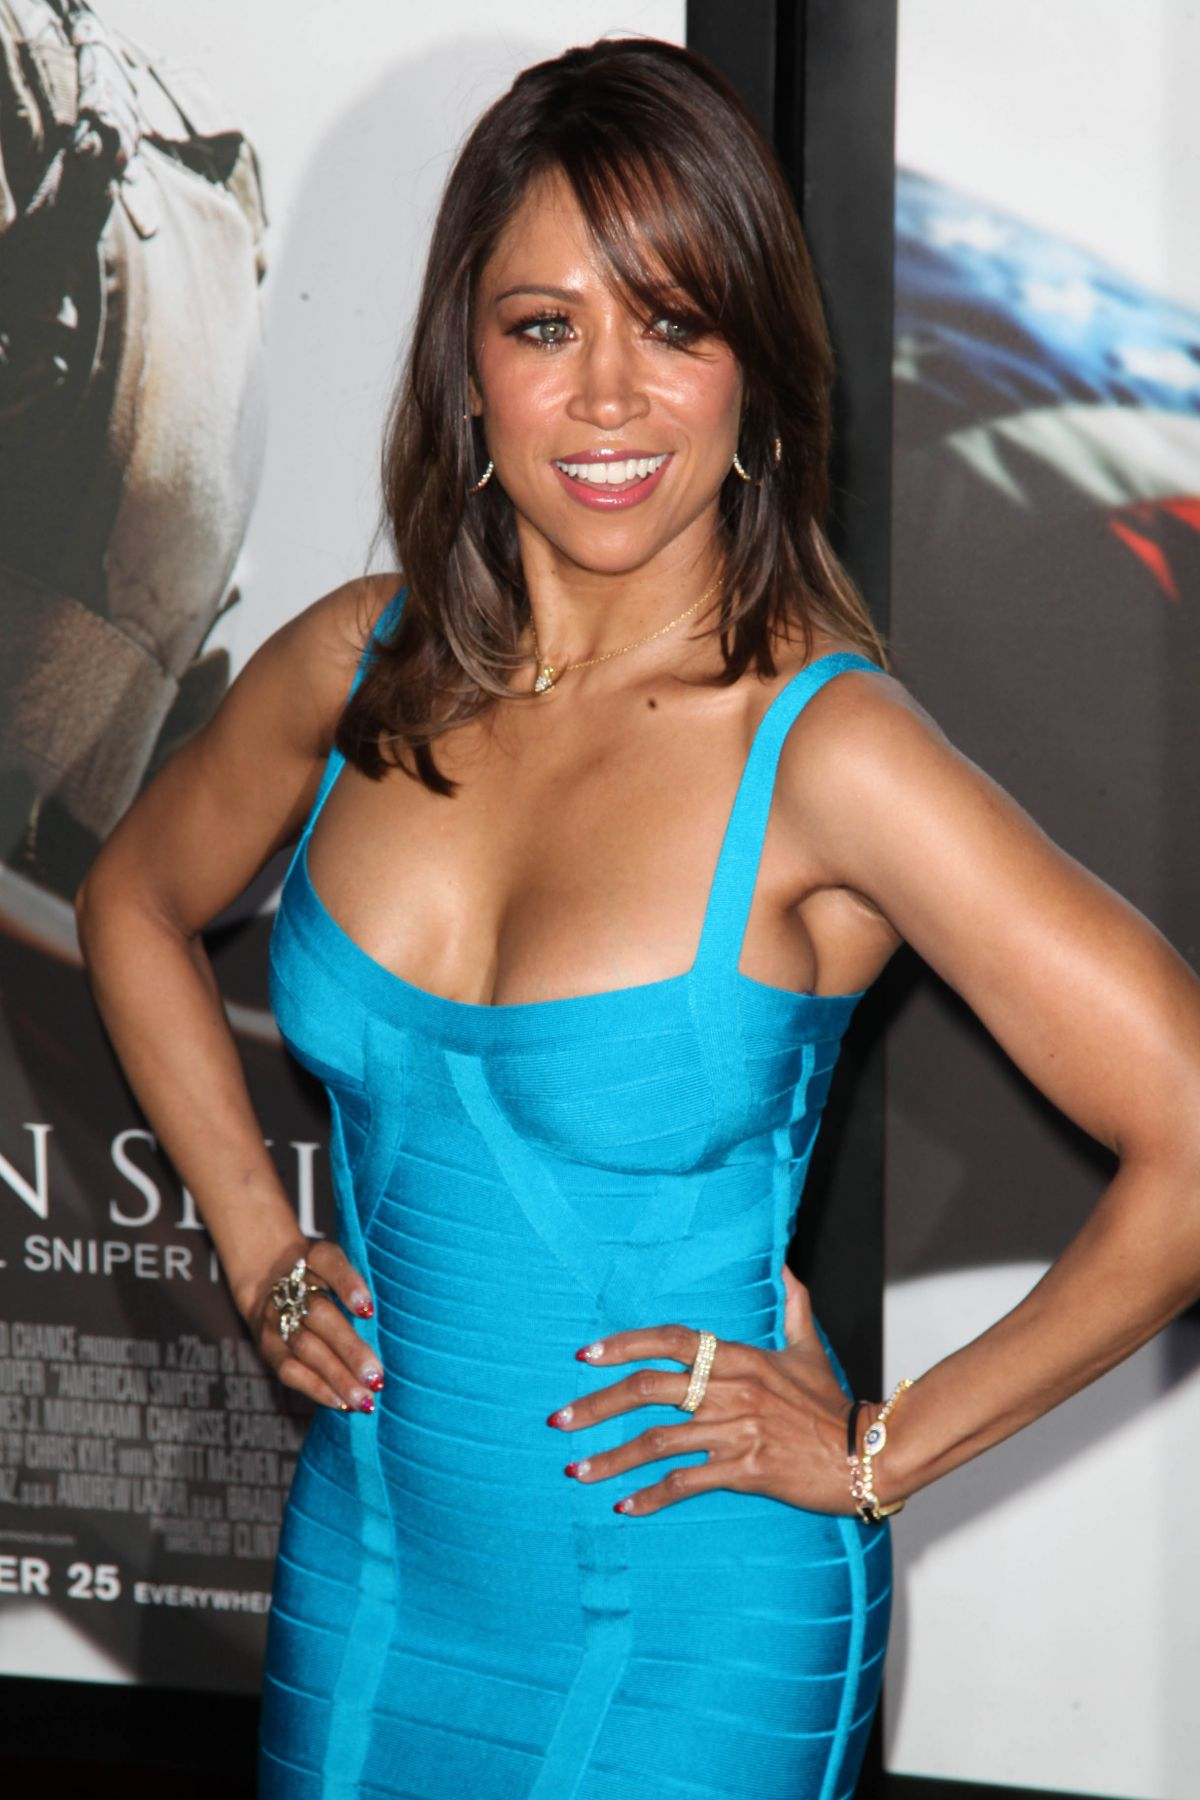 STACEY DASH at American Sniper Premiere in New York